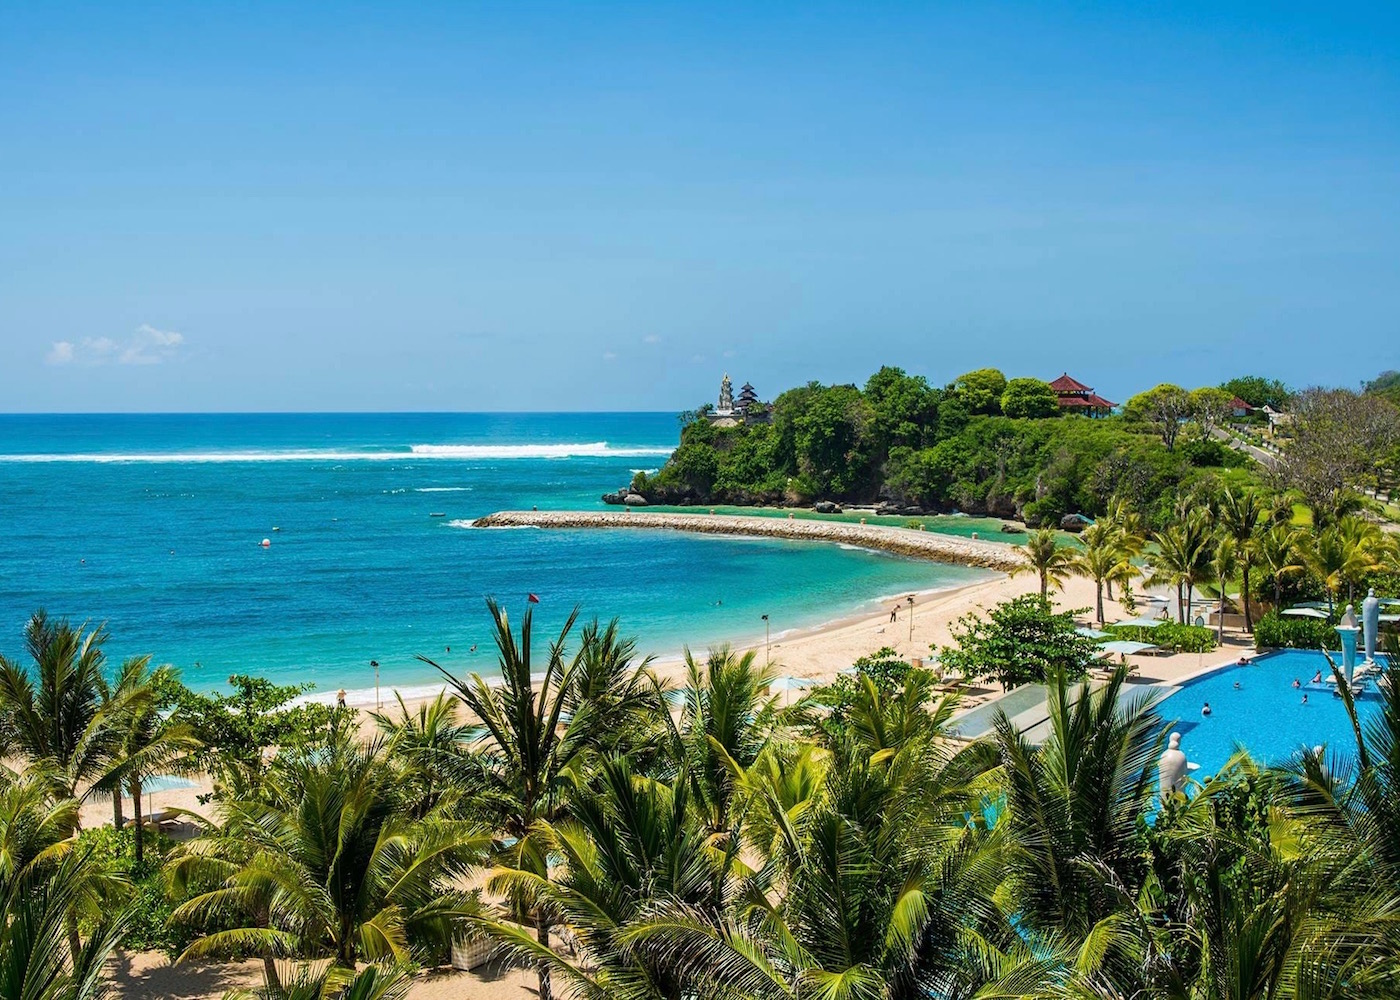 Nusa Dua's blue sea and white sand - one of Bali's best beaches